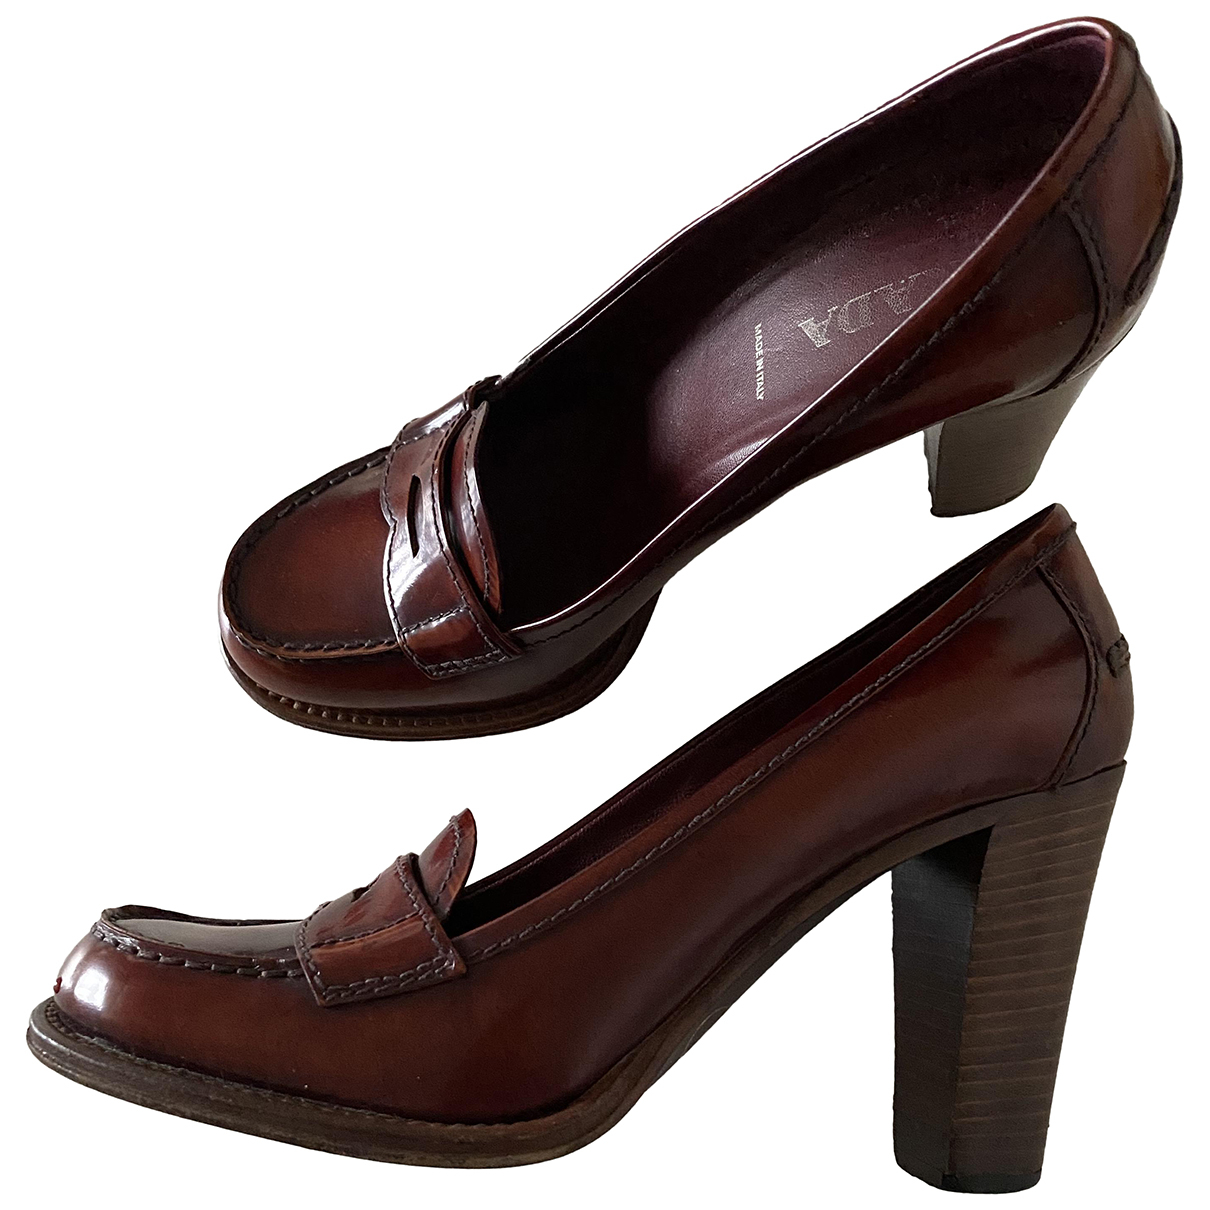 Prada N Brown Leather Flats for Women 36.5 IT